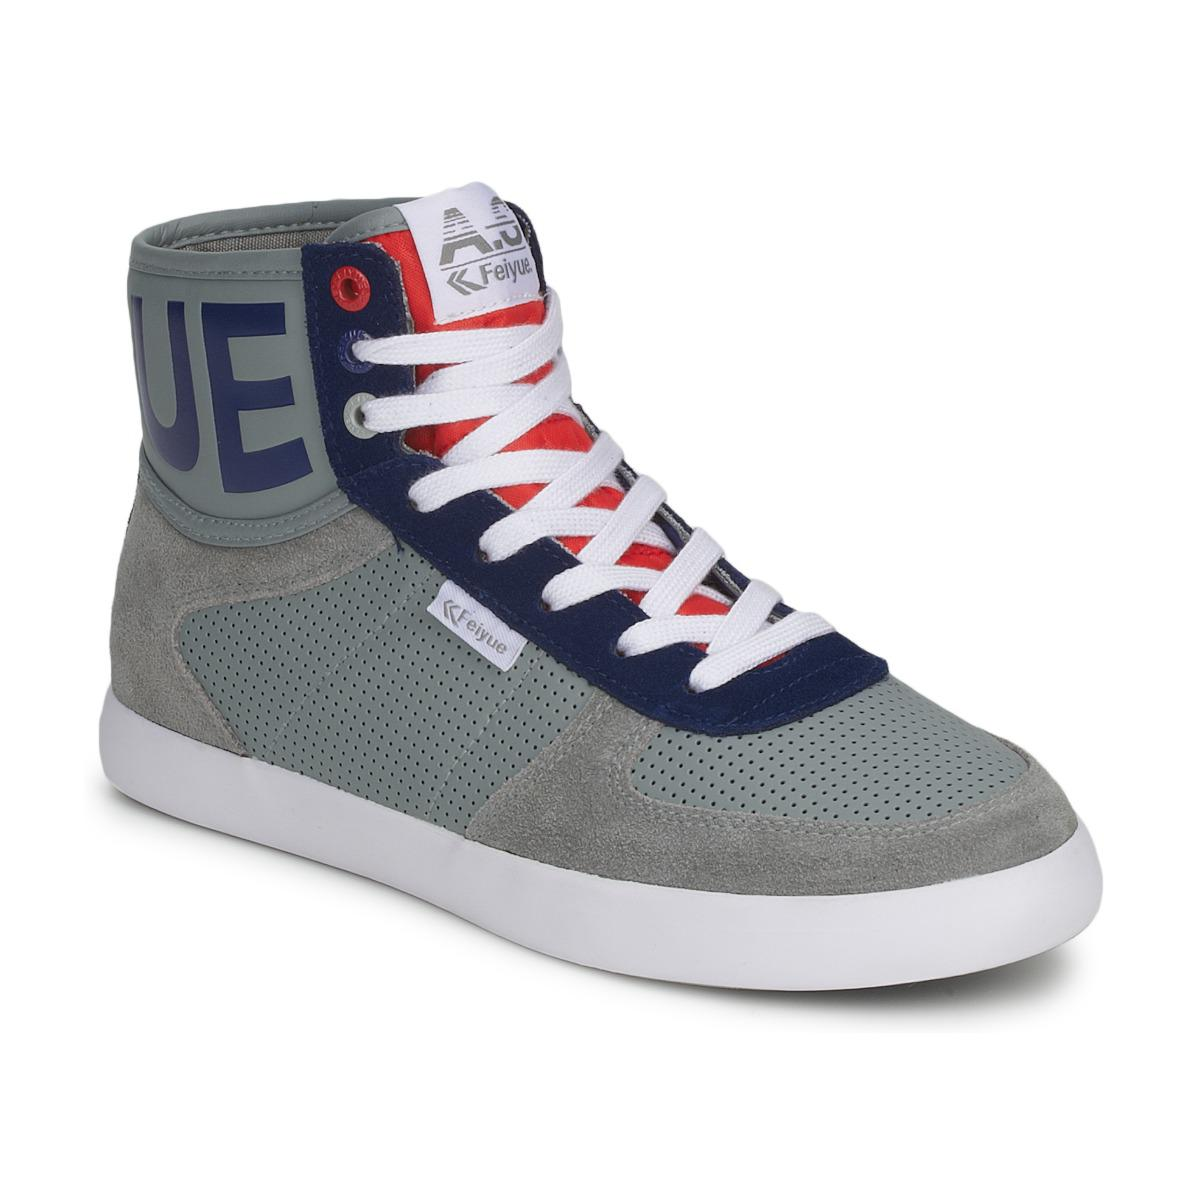 edb0f9ae33a230 Feiyue A.s High Cuir Synthétique Shoes (high-top Trainers) in Gray ...